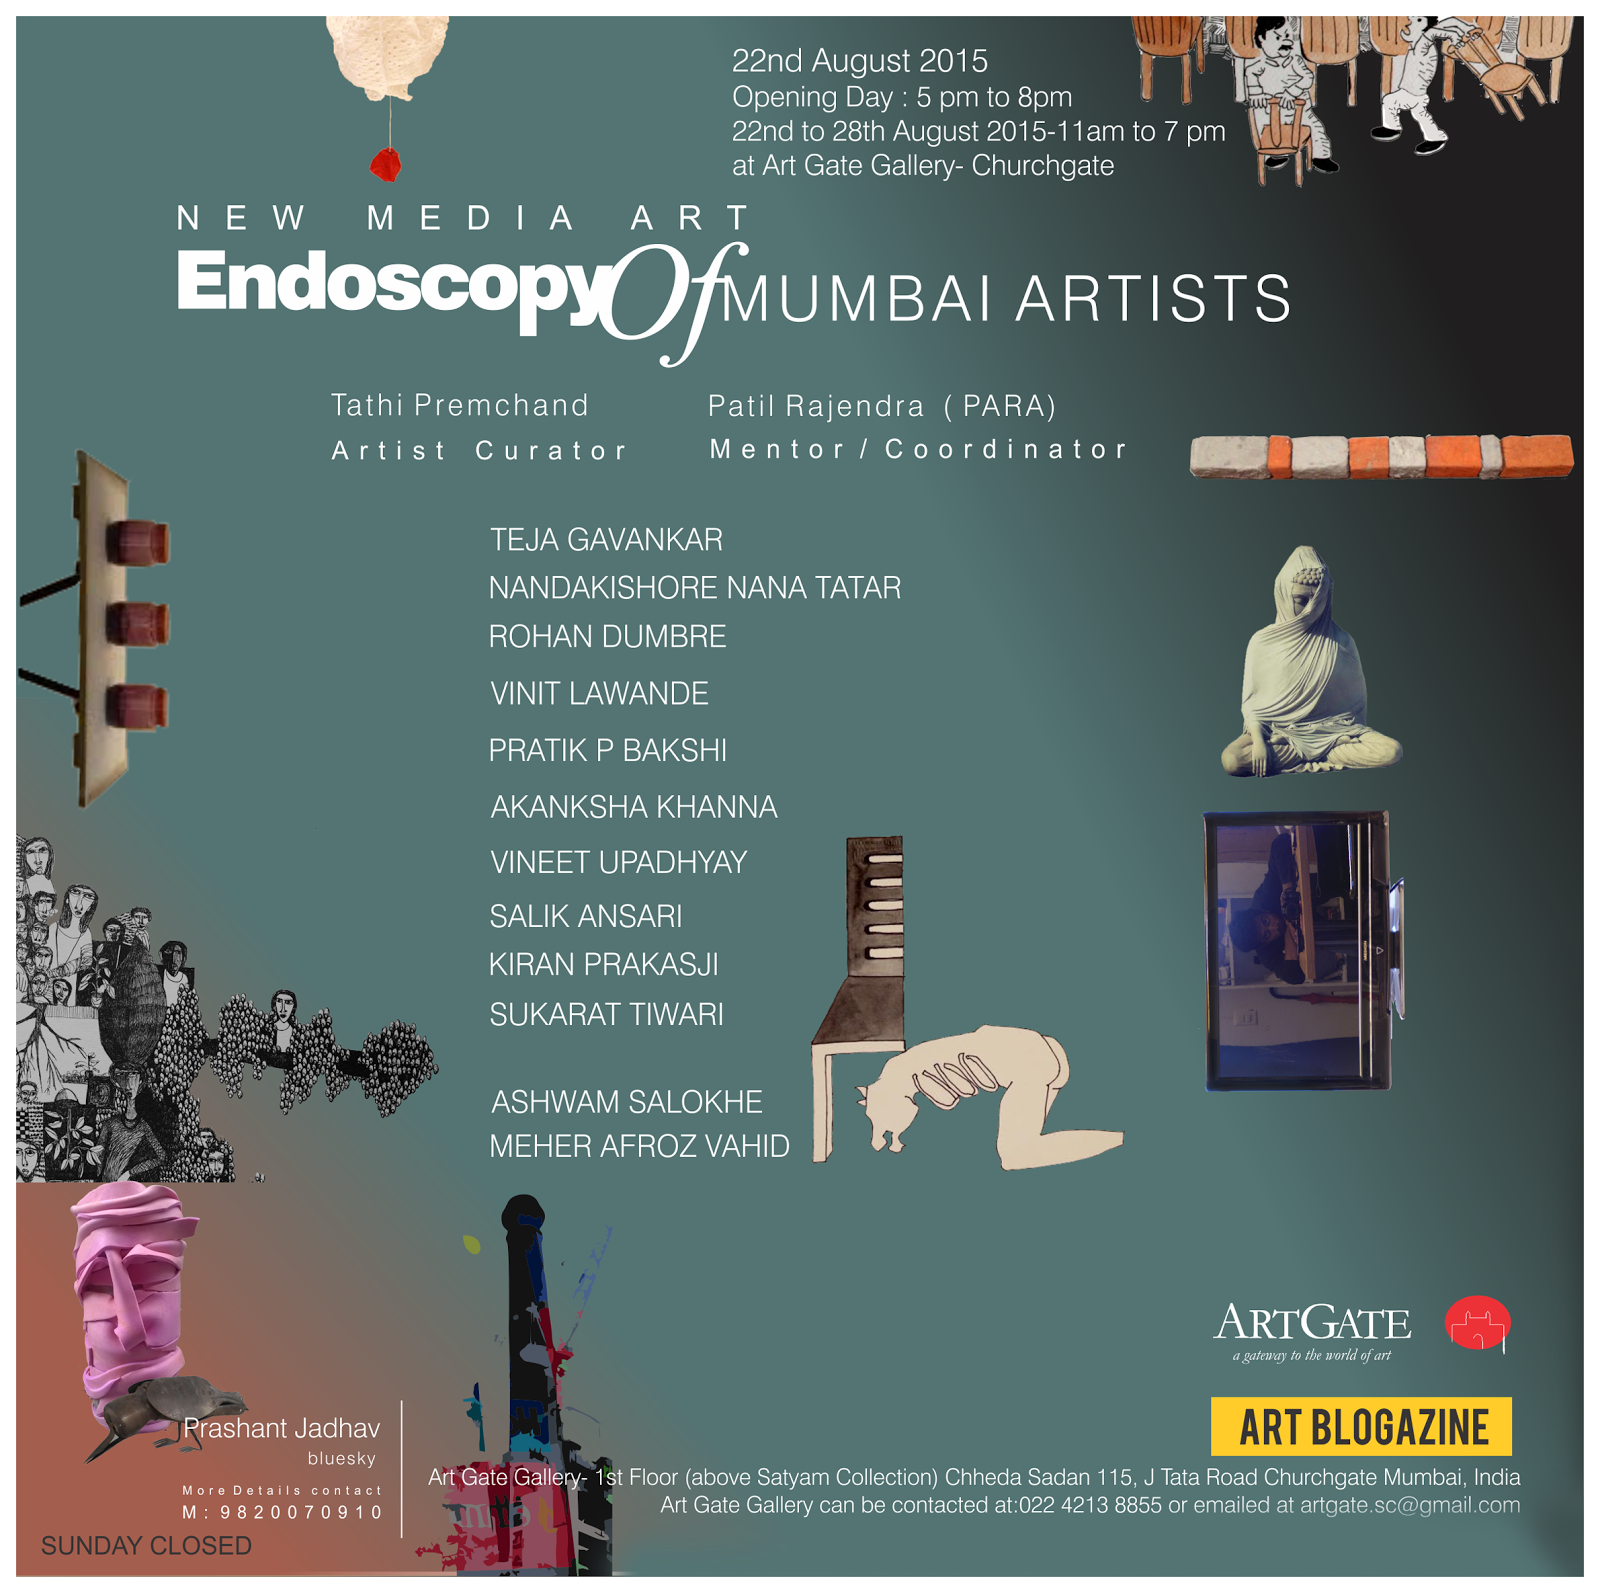 Endoscopy of Mumbai Artists